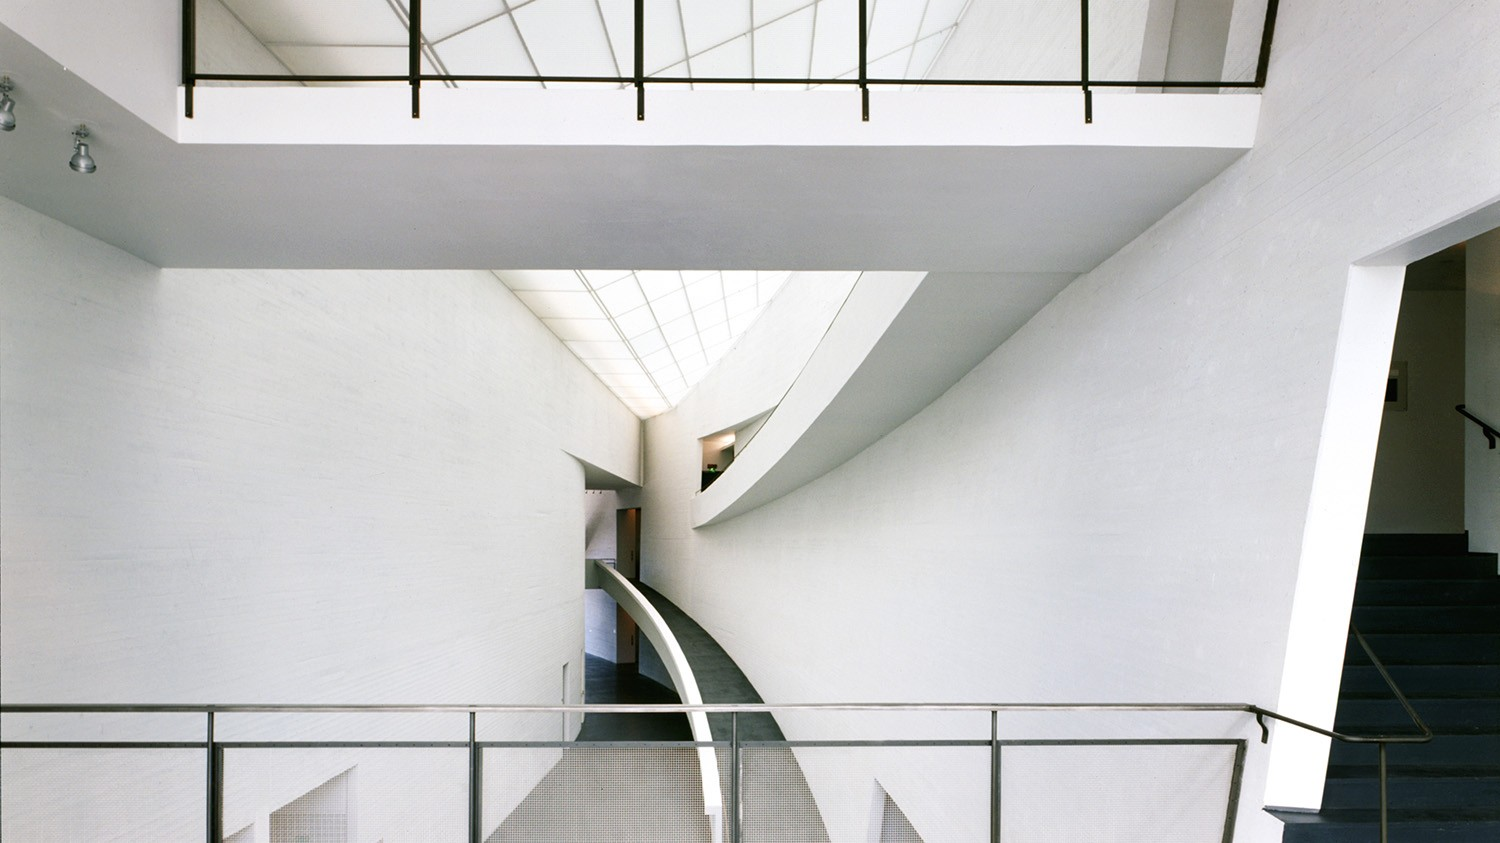 https://s3.us-east-2.amazonaws.com/steven-holl/uploads/projects/project-images/PaulWarchol_Kiasma_98-047-08B_WH.jpg